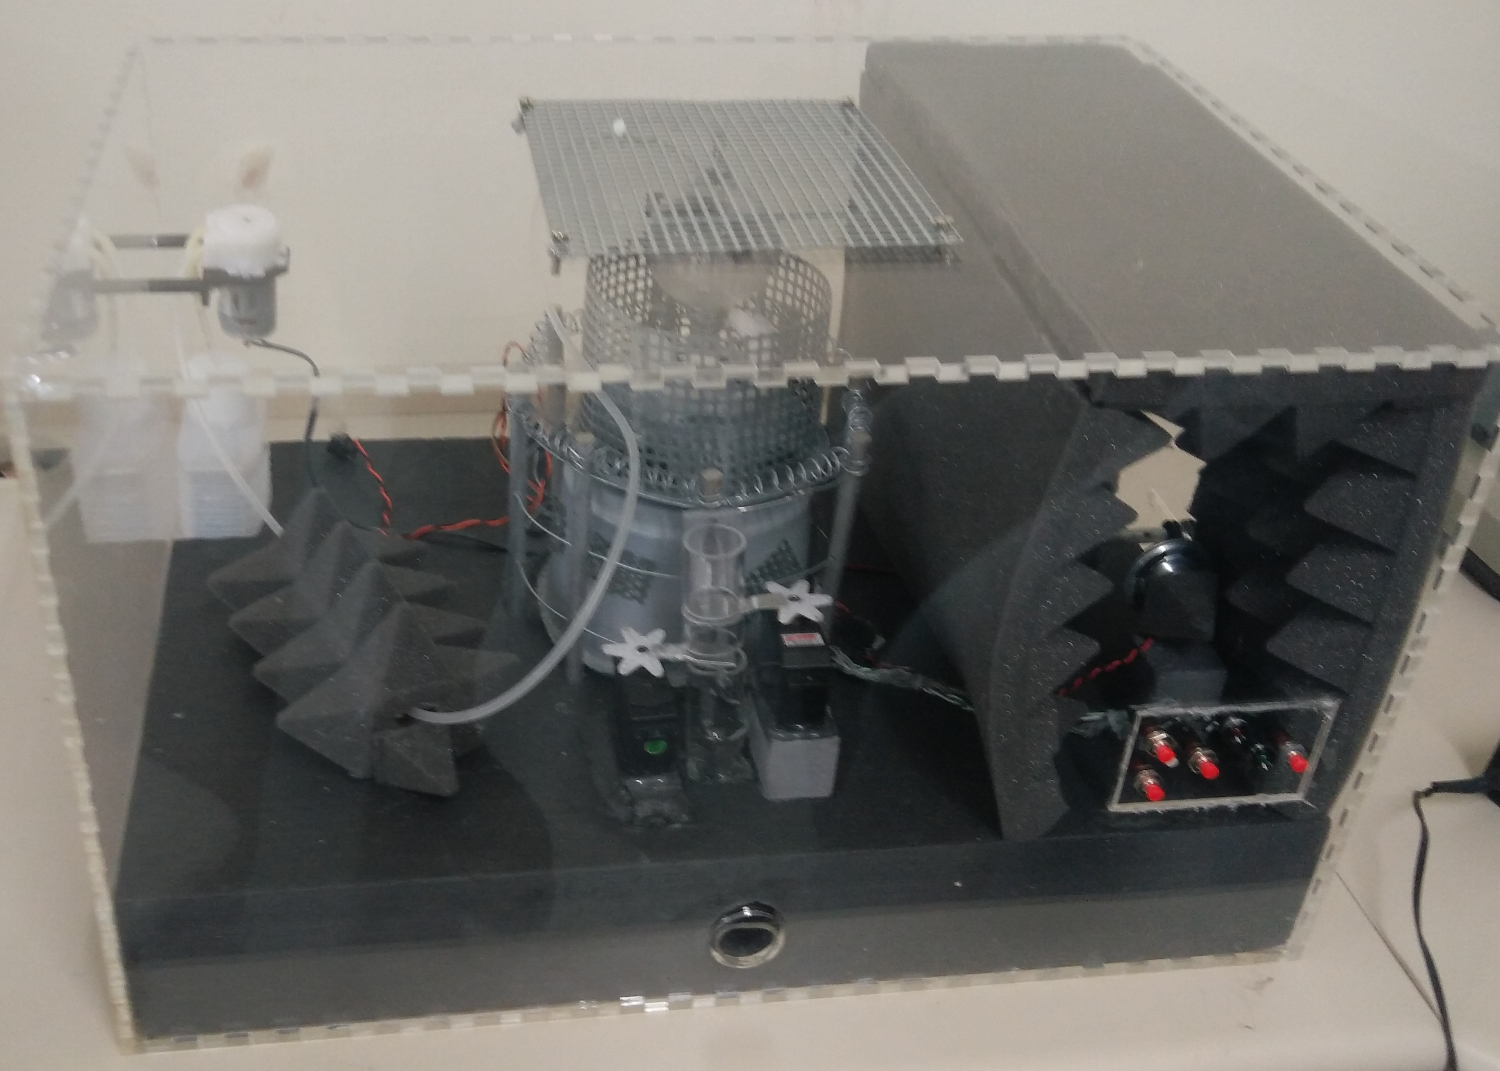 Picture of the safe